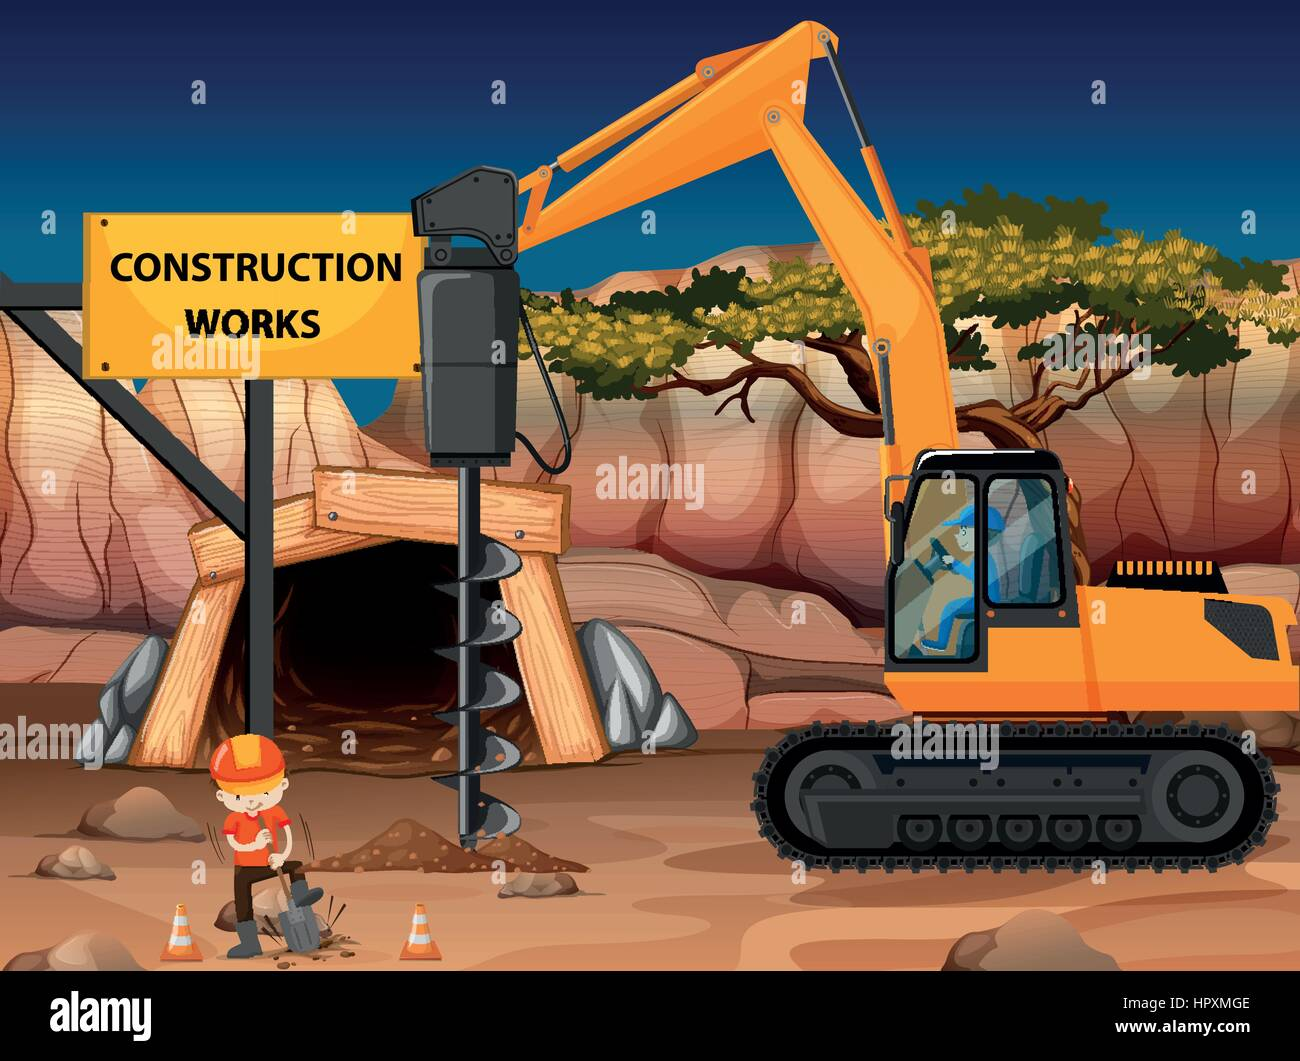 Construction work at the mine with core drill illustration - Stock Vector